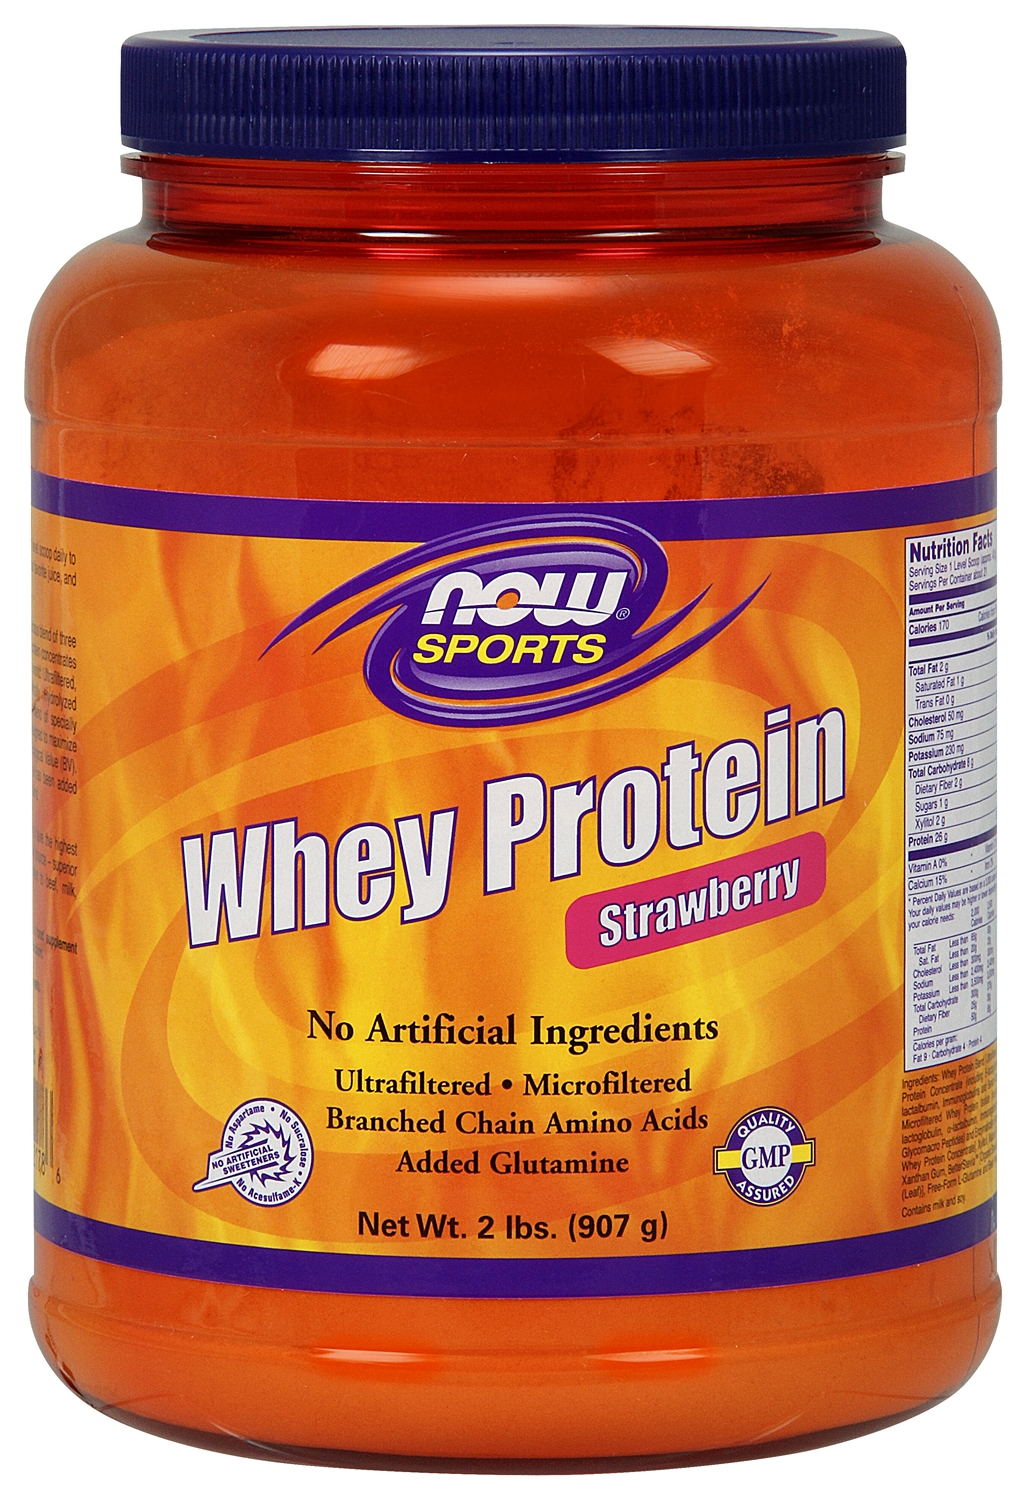 Whey Protein Strawberry 2 lbs (908 g) by NOW